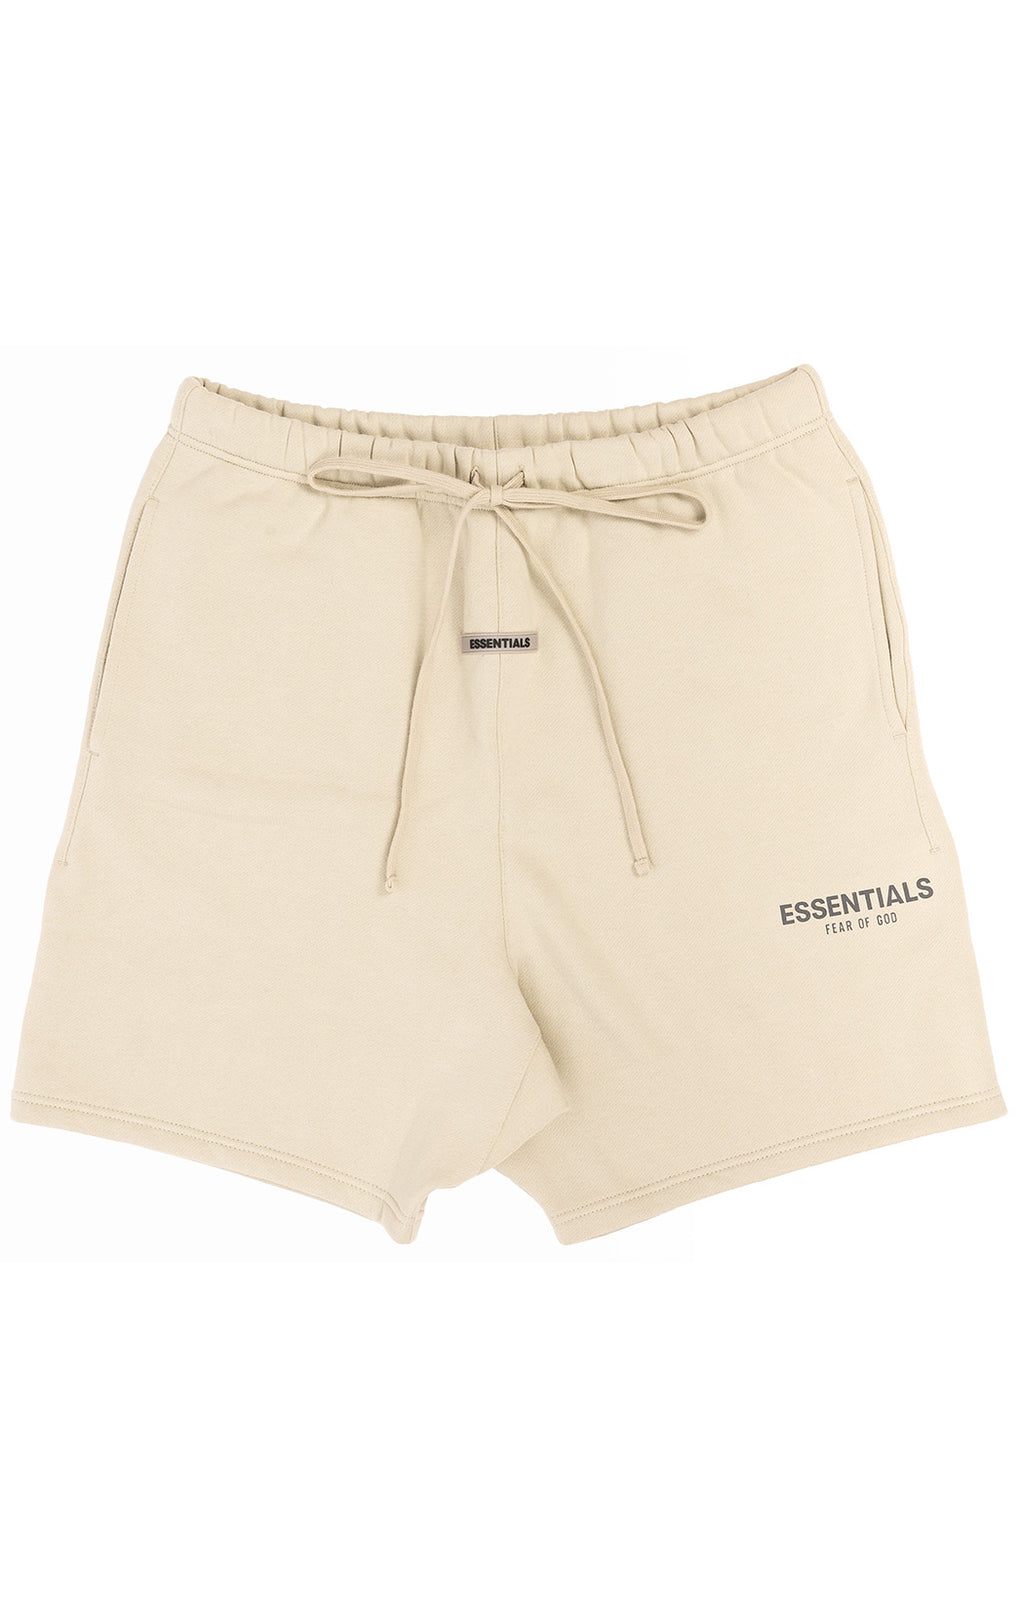 FEAR OF GOD ESSENTIALS with tags Shorts Size: Large